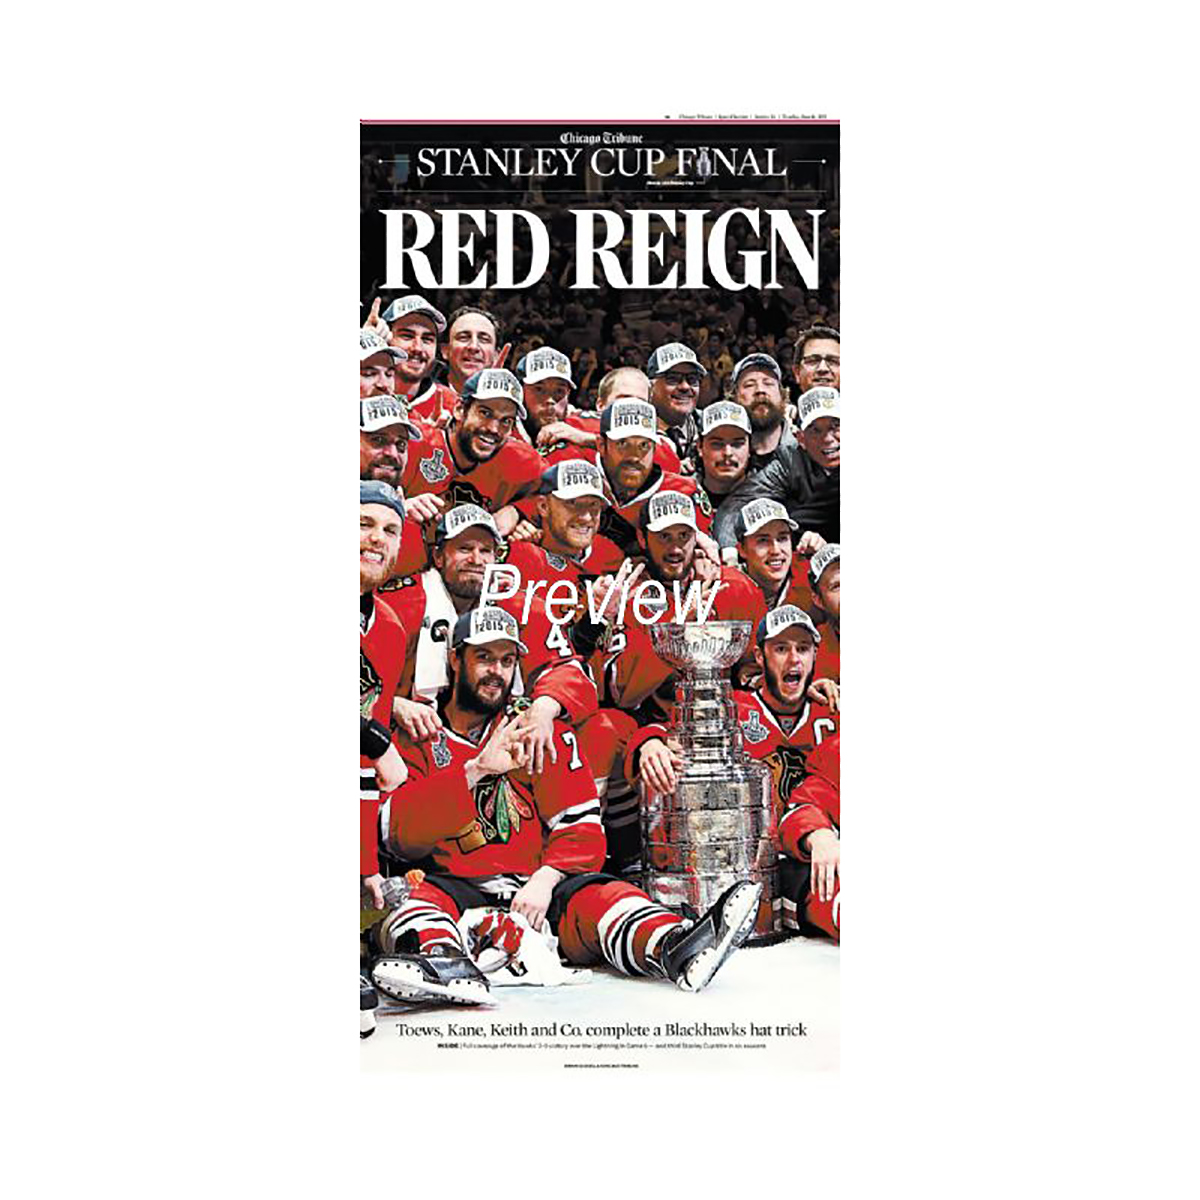 Chicago Blackhawks 2015 Stanley Cup Win 'RED REIGN' Front Page Poster